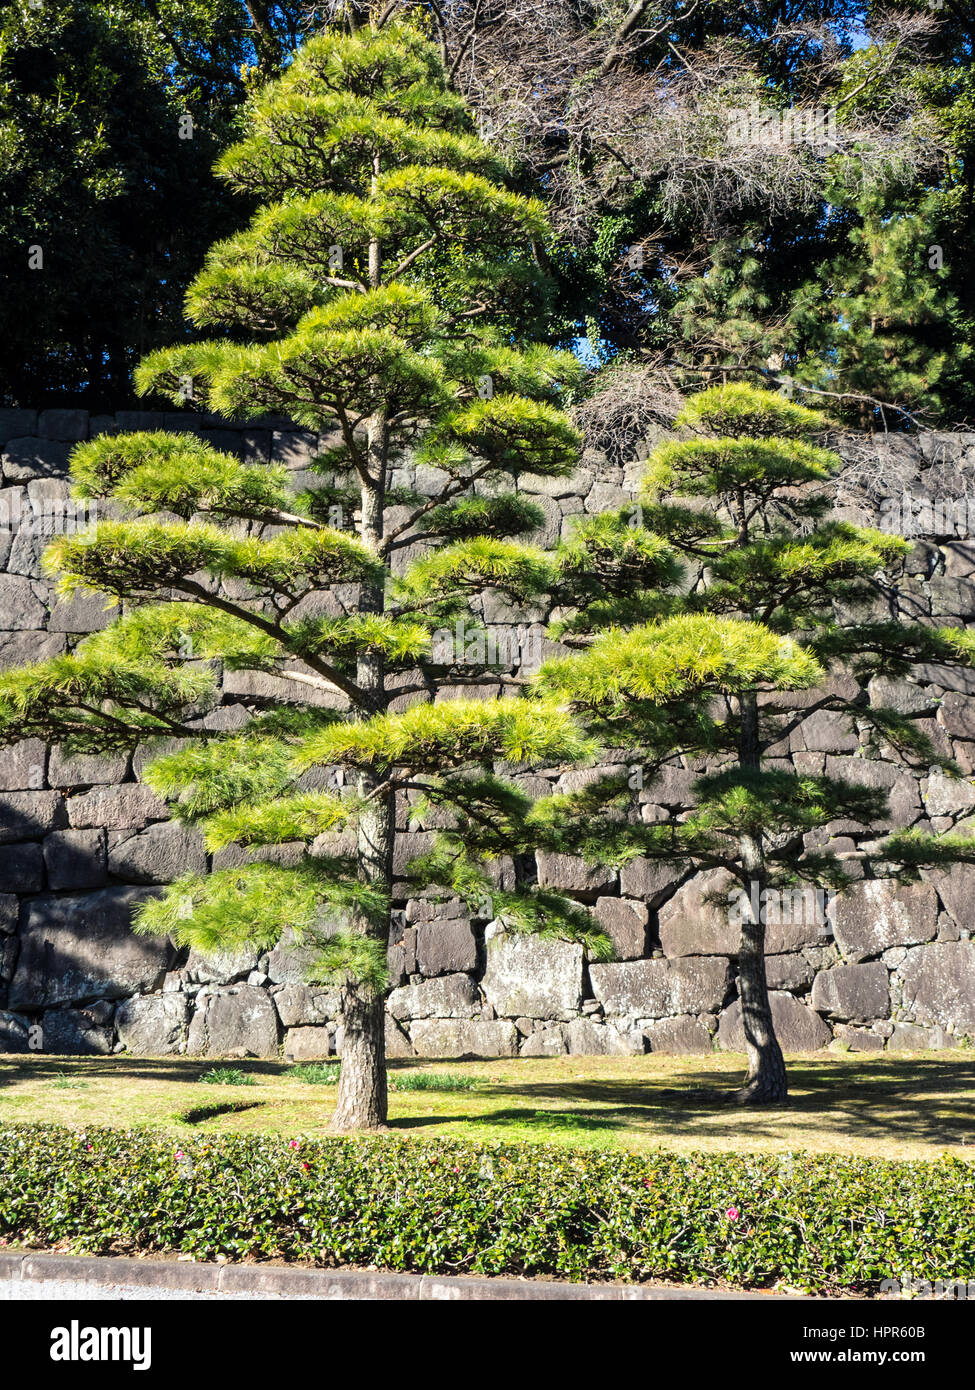 Japanese black pine trees in front of a granite stone wall in the